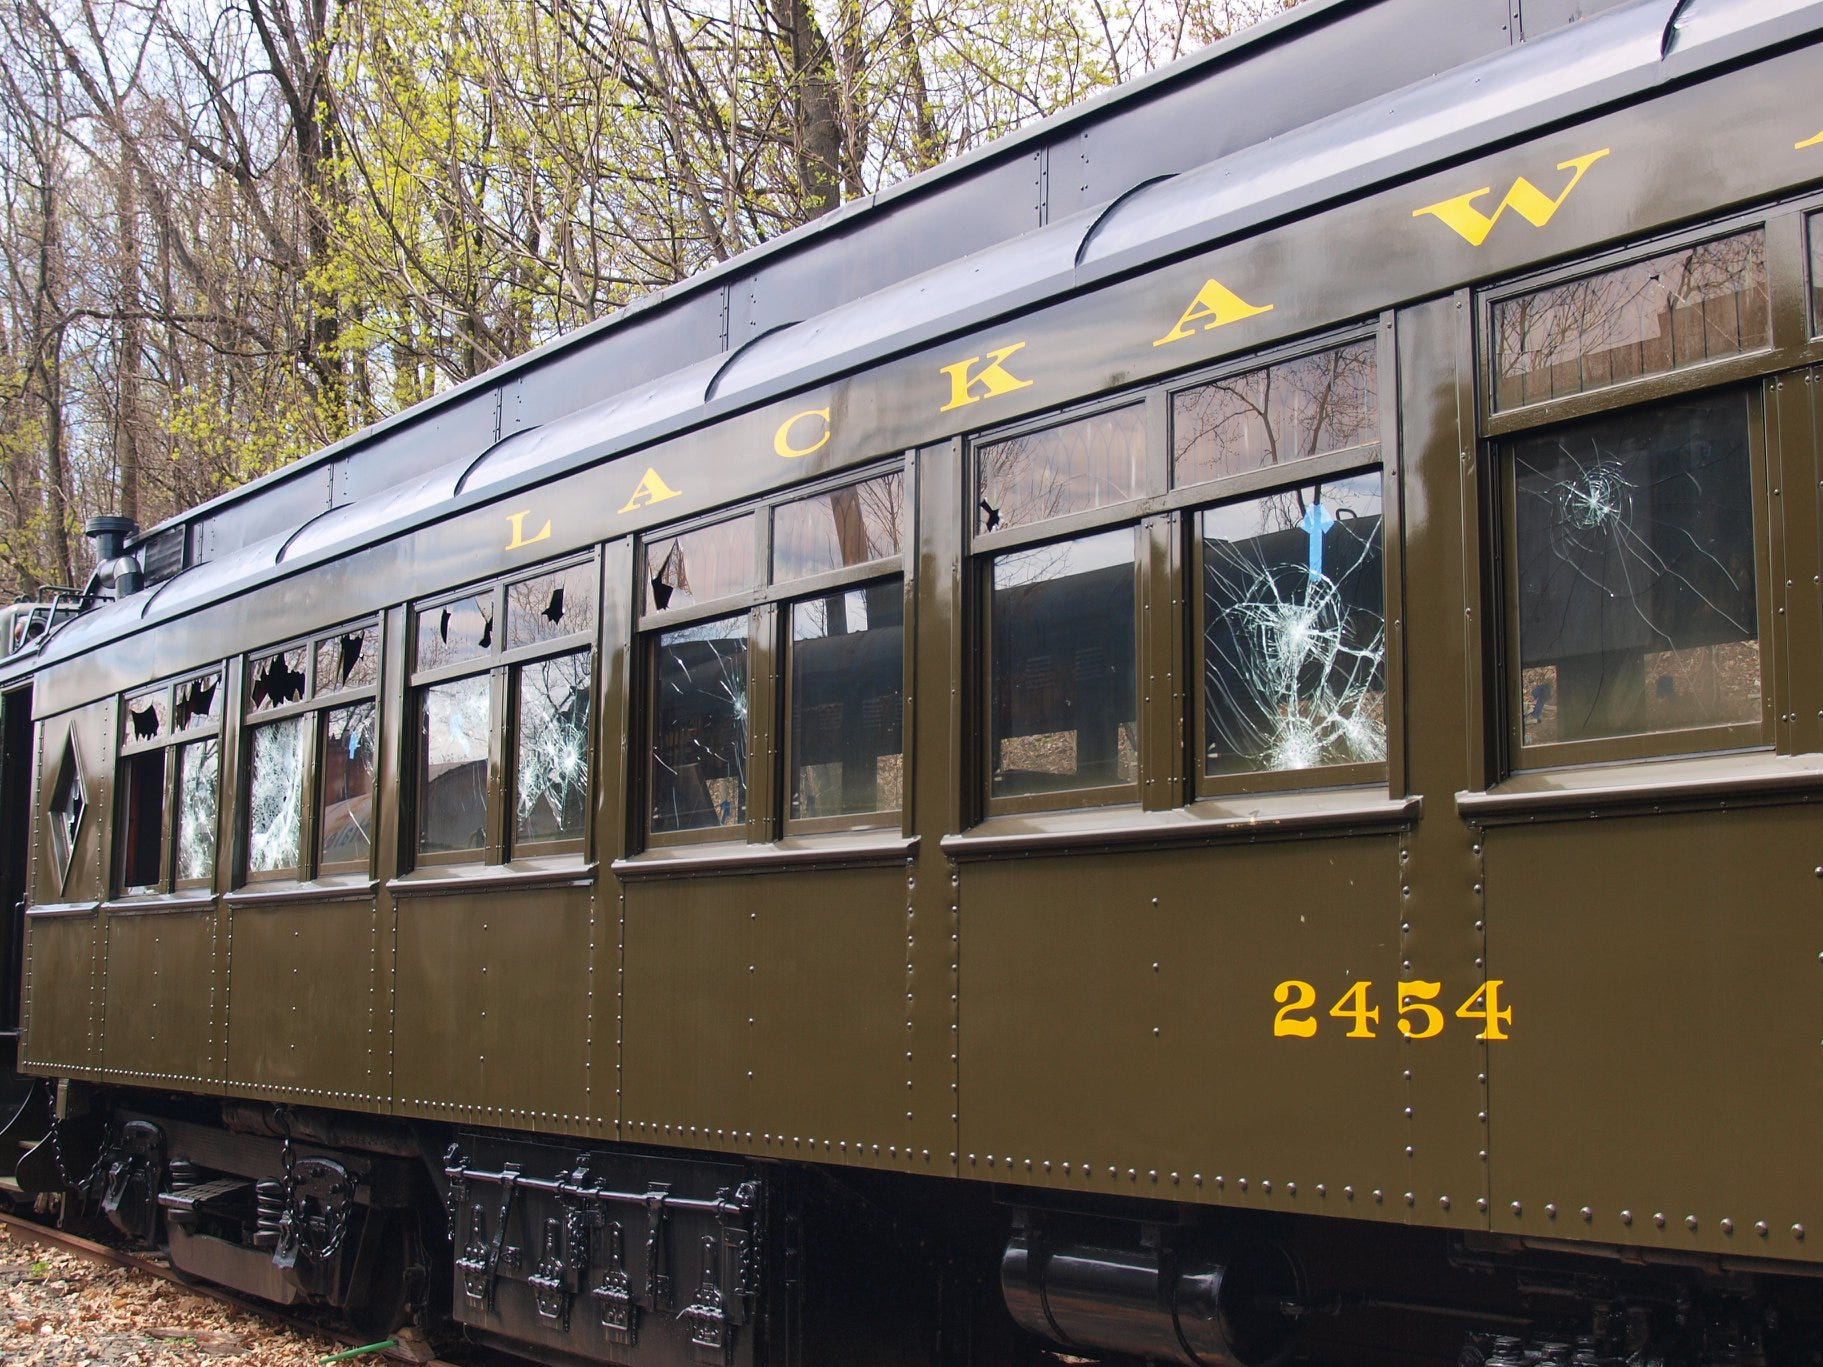 Vandals caused major damage to historic rail cars, owned by the Whippany Railway Museum at the  Boonton Rail Yard.